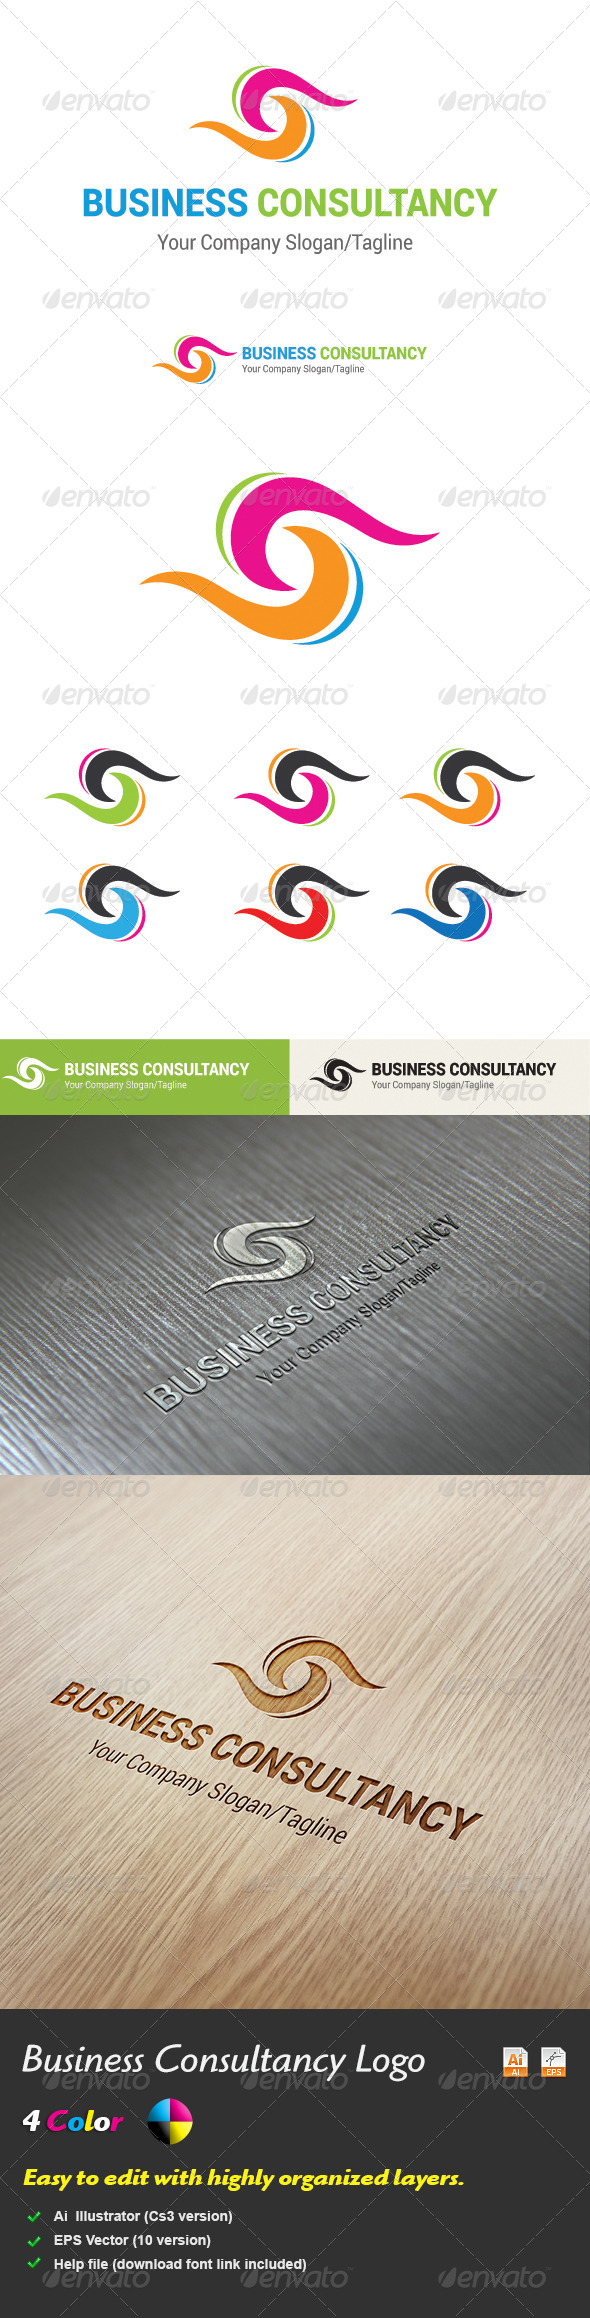 GraphicRiver Business Consultancy Logo 5467398